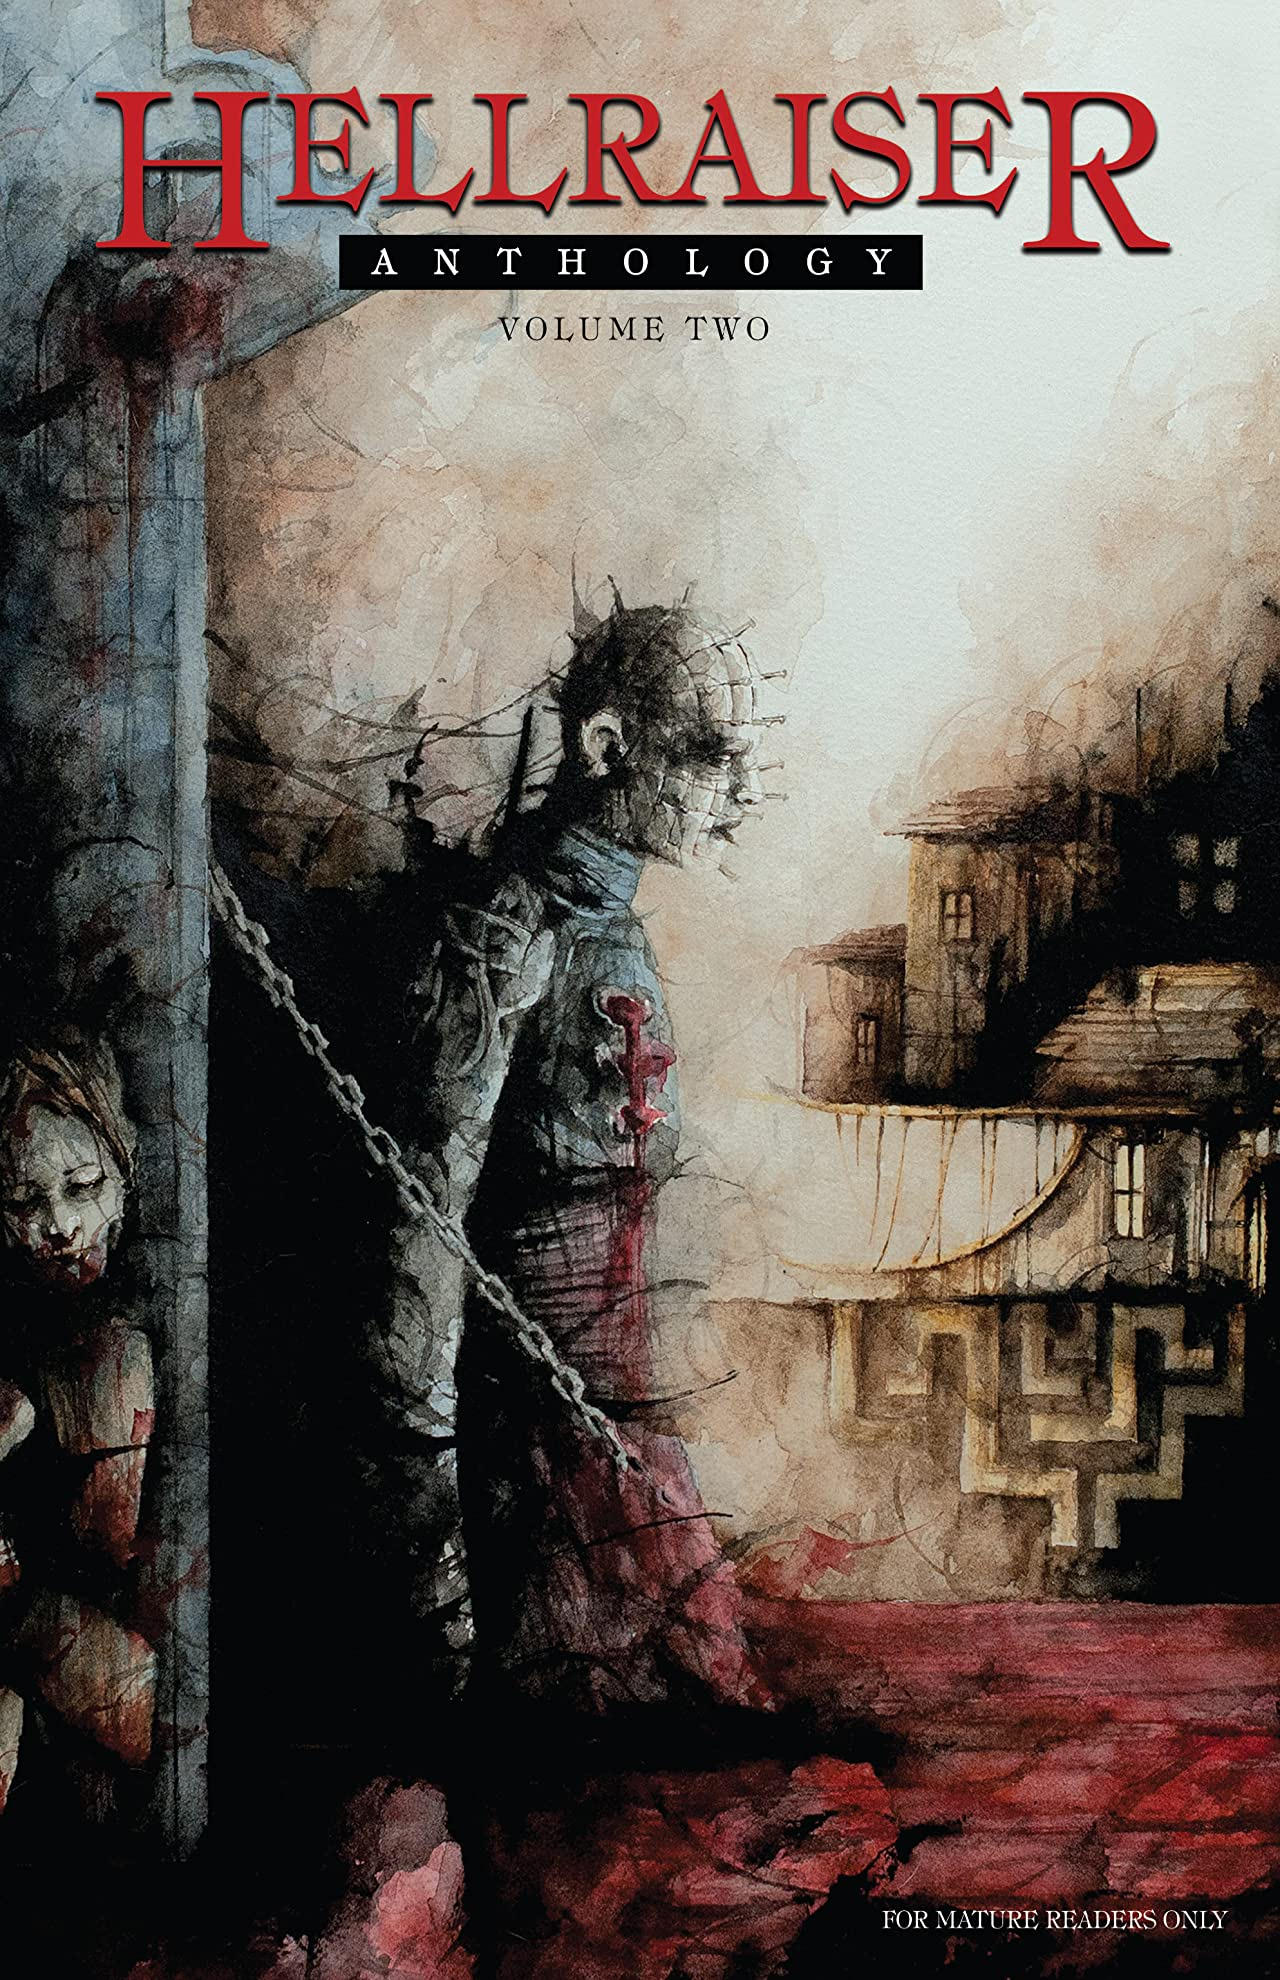 Hellraiser: Anthology Vol. 2